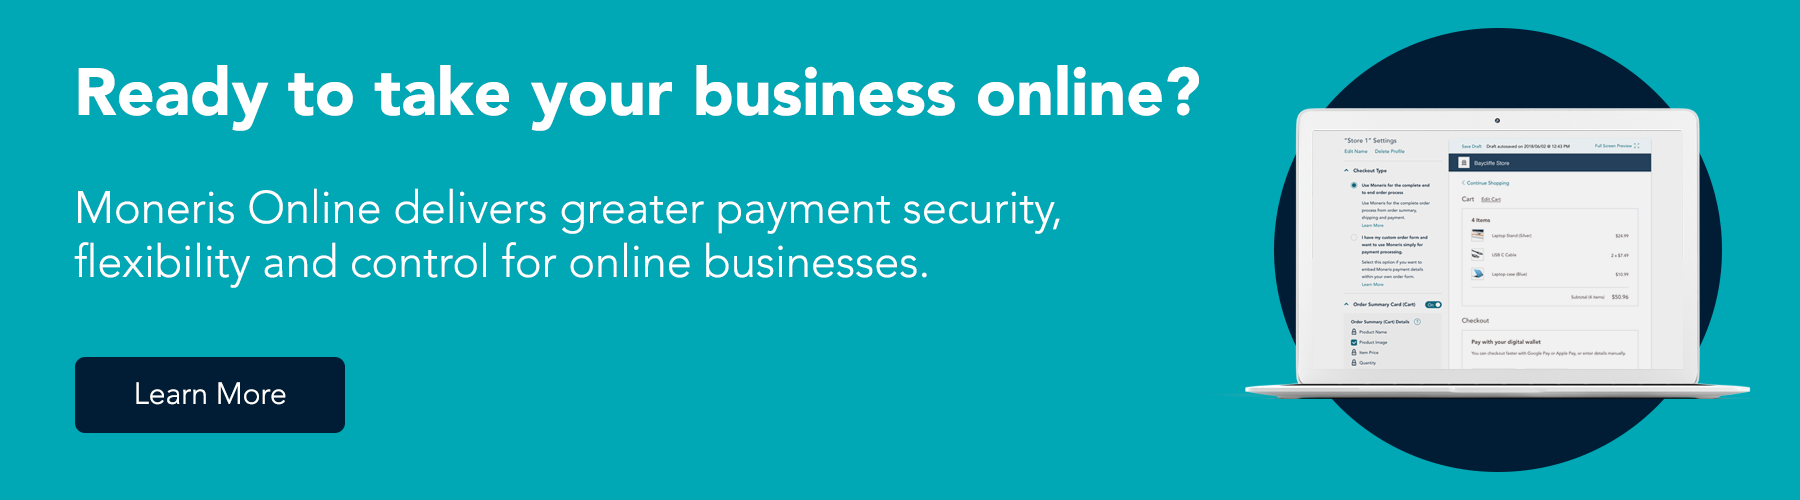 Ready to take your business online? Moneris Online delivers greater payment security, flexibility and control for online businesses. Learn more.